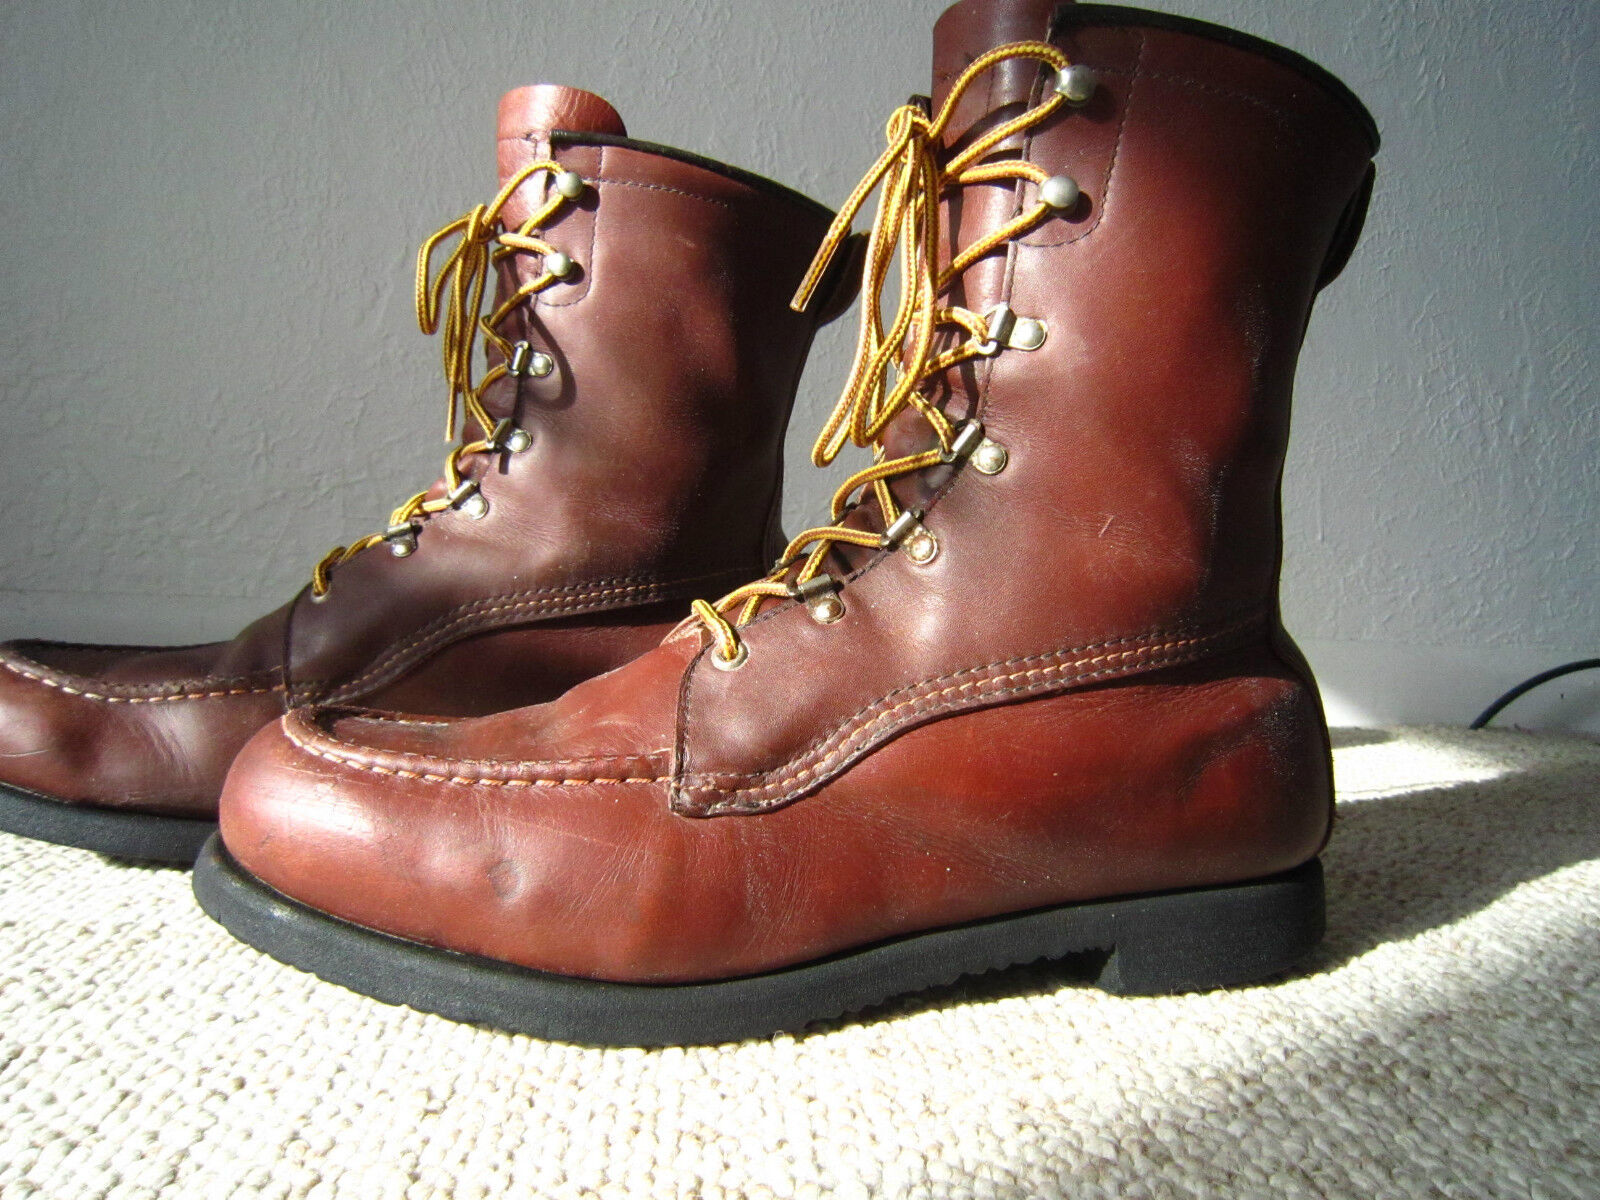 Rare    USA Vintage FIELD & STREAM Leather Hunting   Work Boots - Men's sz 11